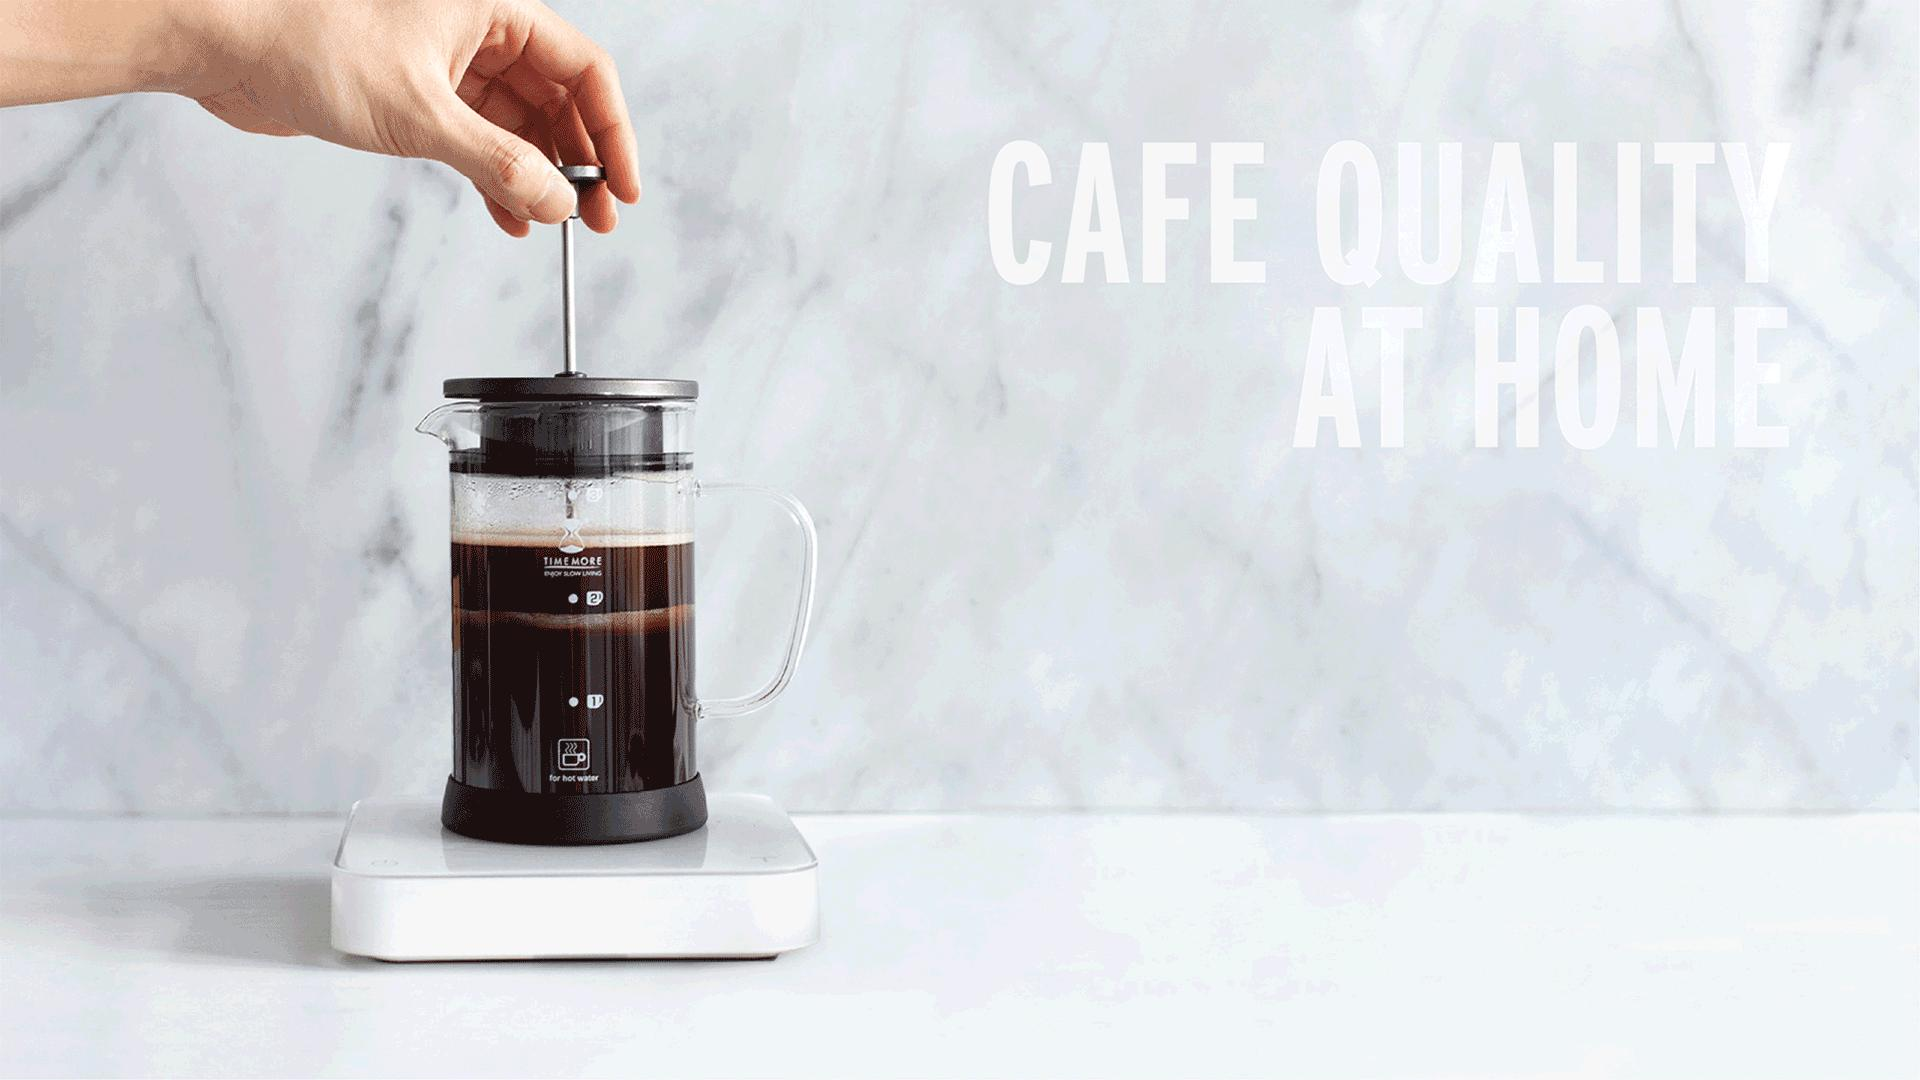 Win a six month Pilot Coffee subscription | Café quality at home